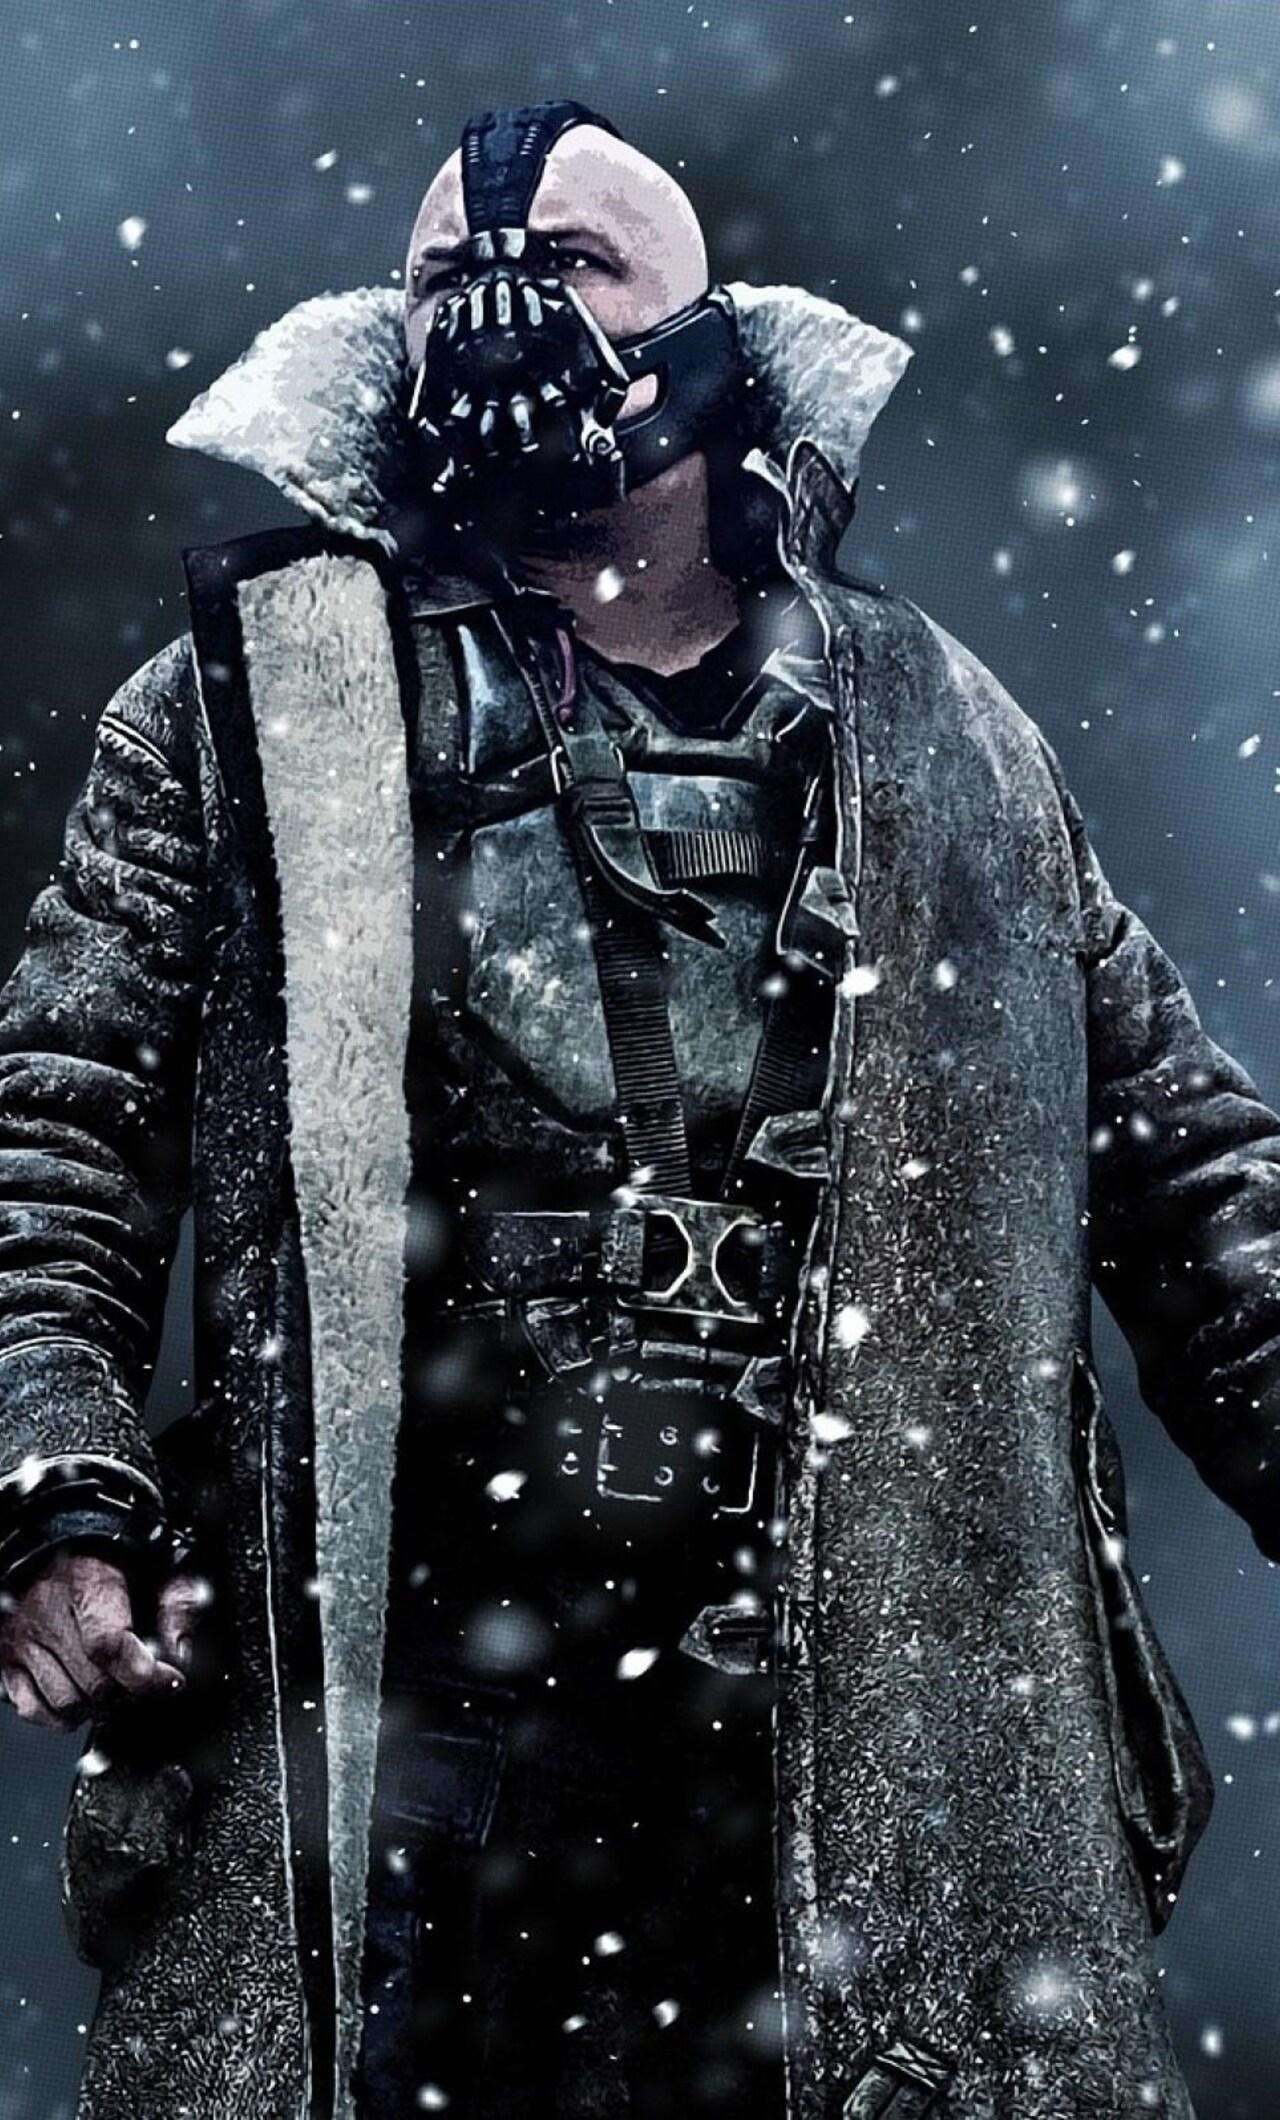 The Dark Knight Rises Wallpapers, Pictures, Images |Dark Knight Rises Iphone Wallpaper